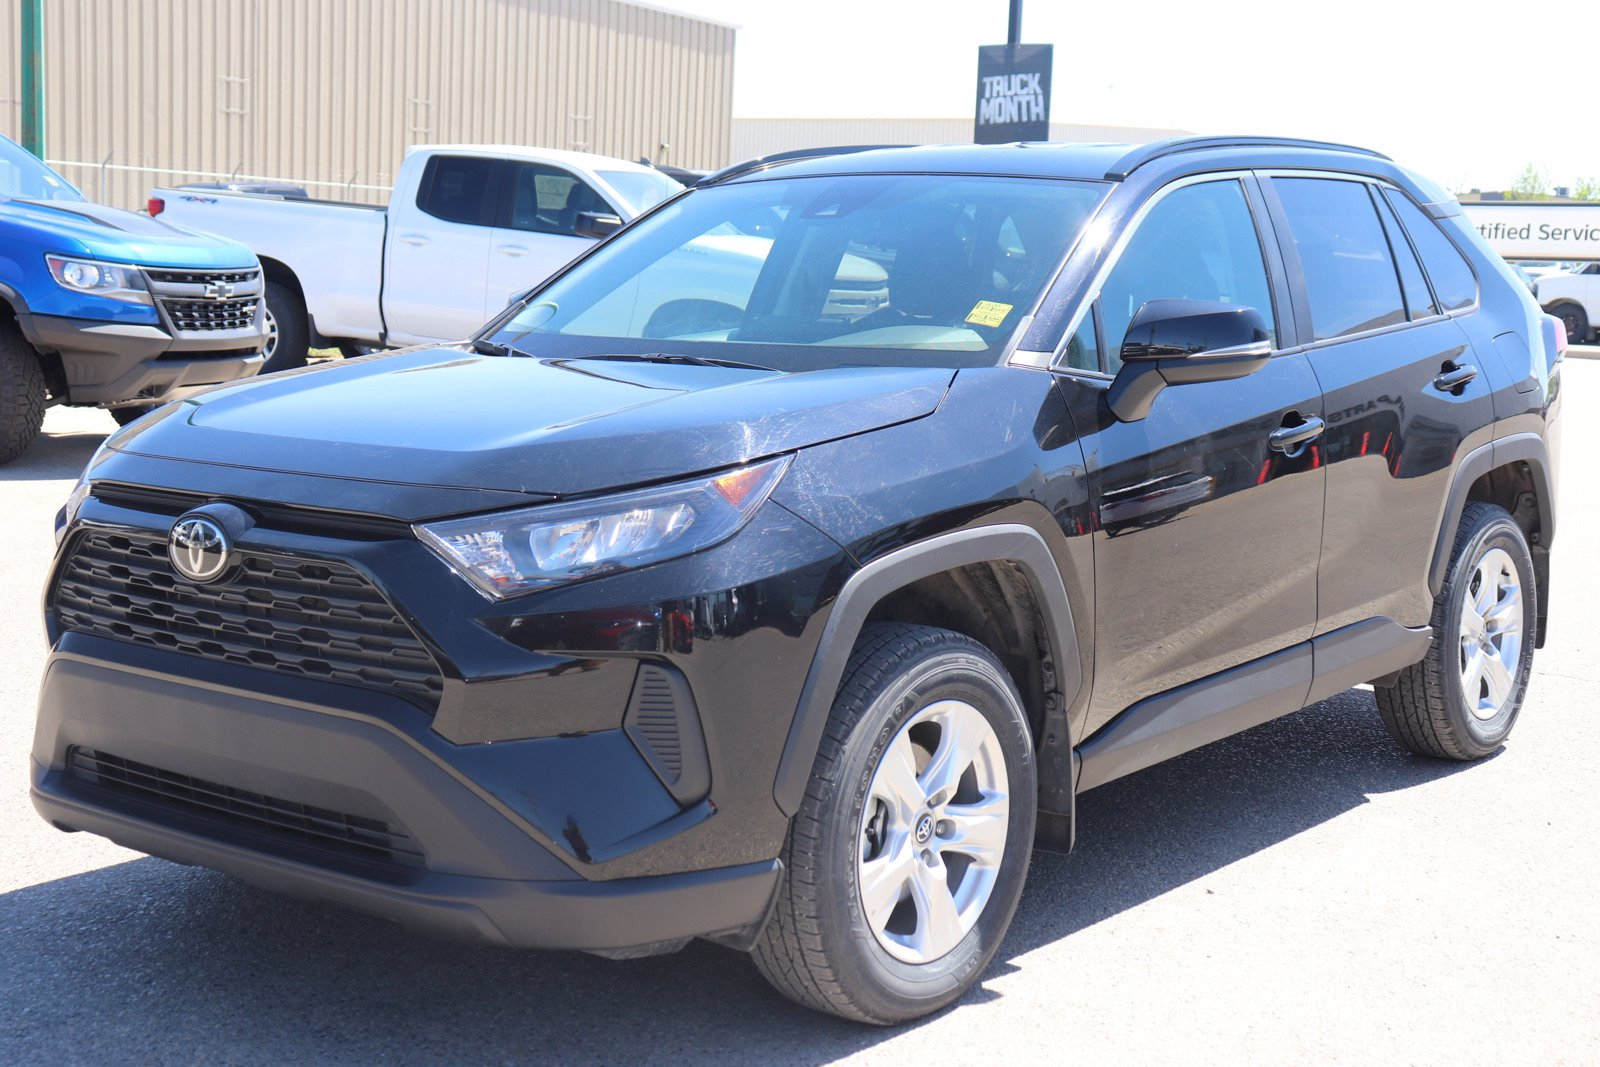 Certified Pre-Owned 2019 Toyota RAV4 LE - Heated Seats, Bluetooth, Back Up Camea, Alloys